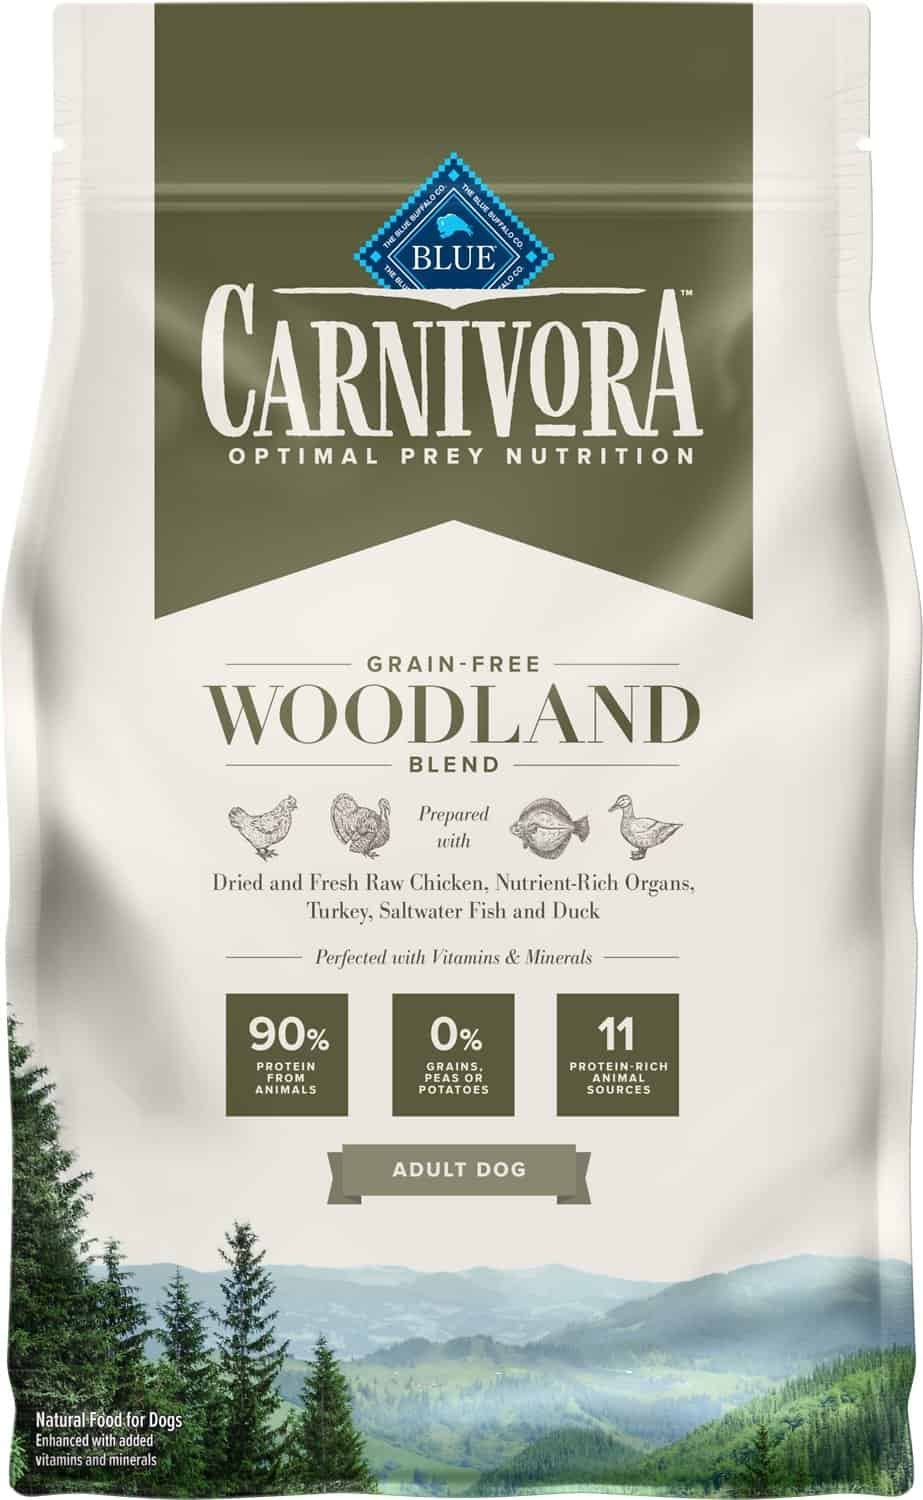 Blue Buffalo Carnivora Review 2021: The Pea & Potato Free Dog Food Line 14